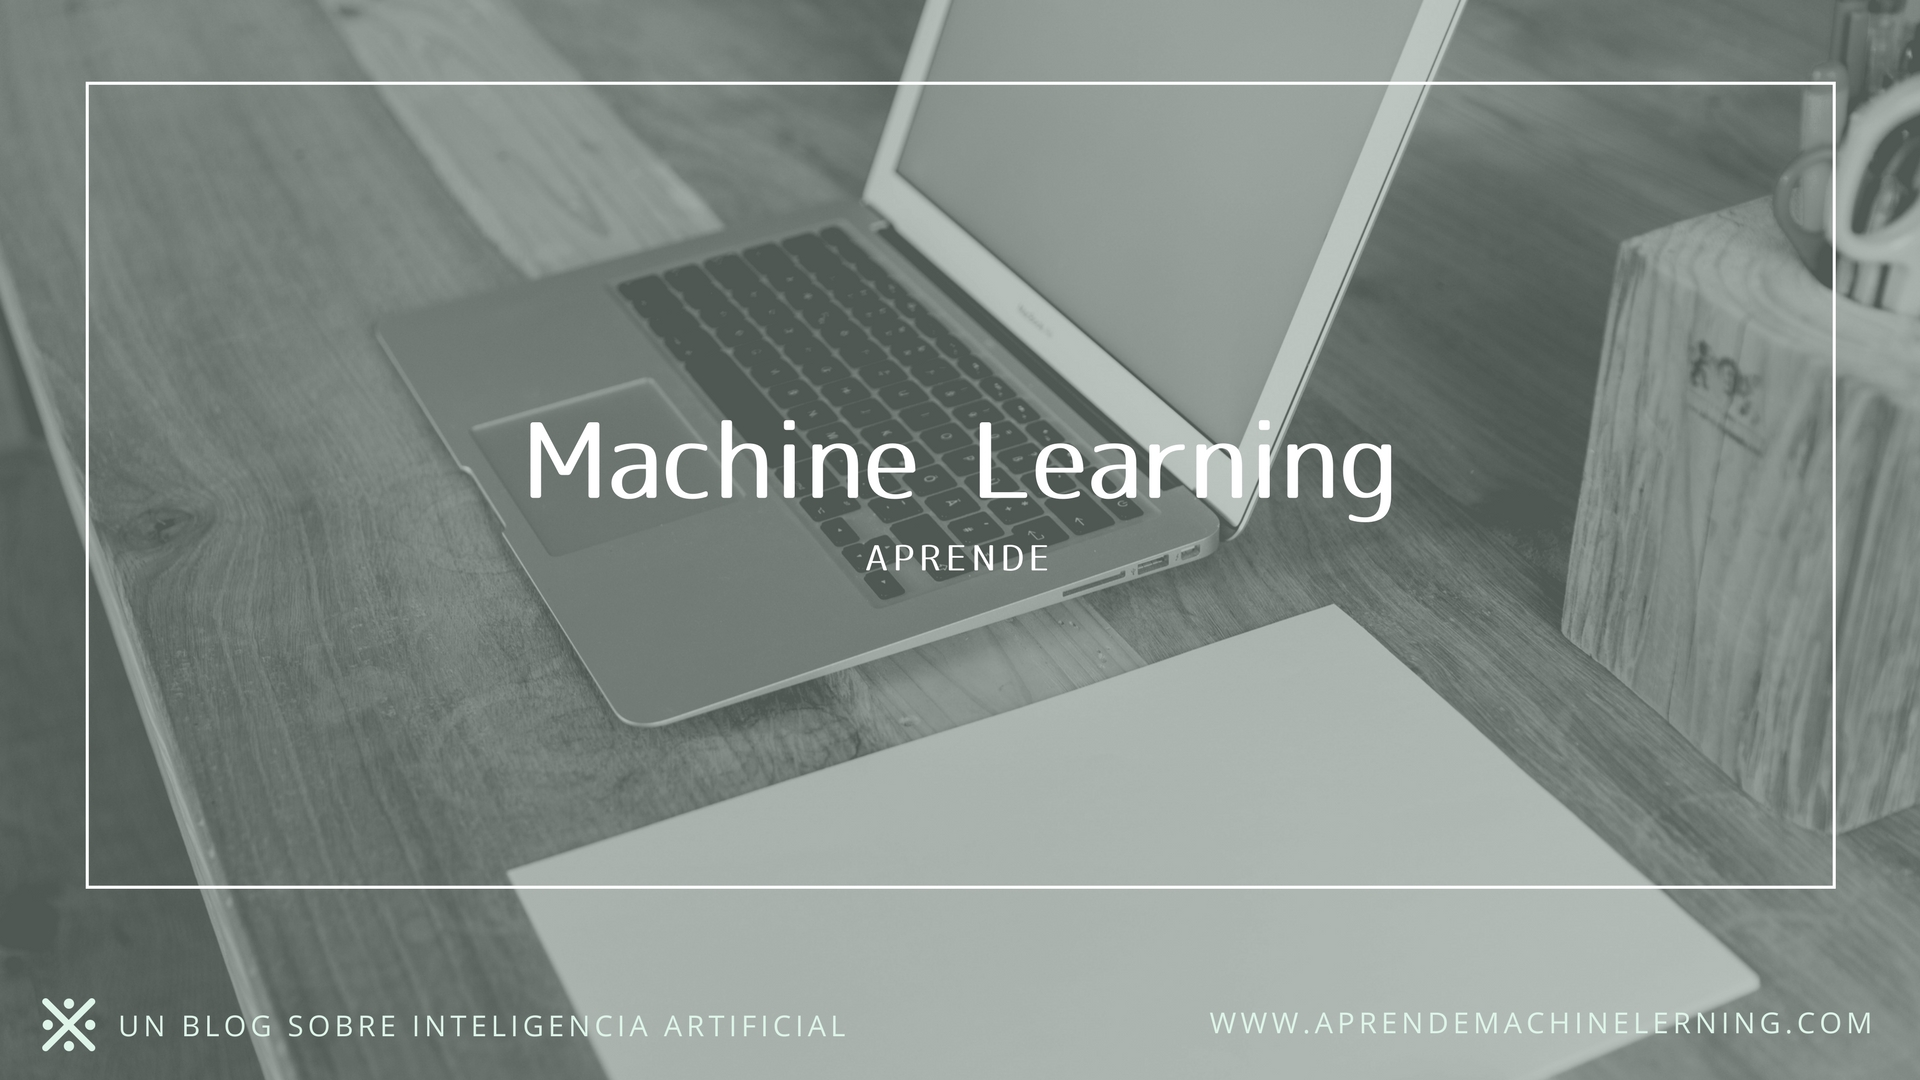 Aprende Machine Learning